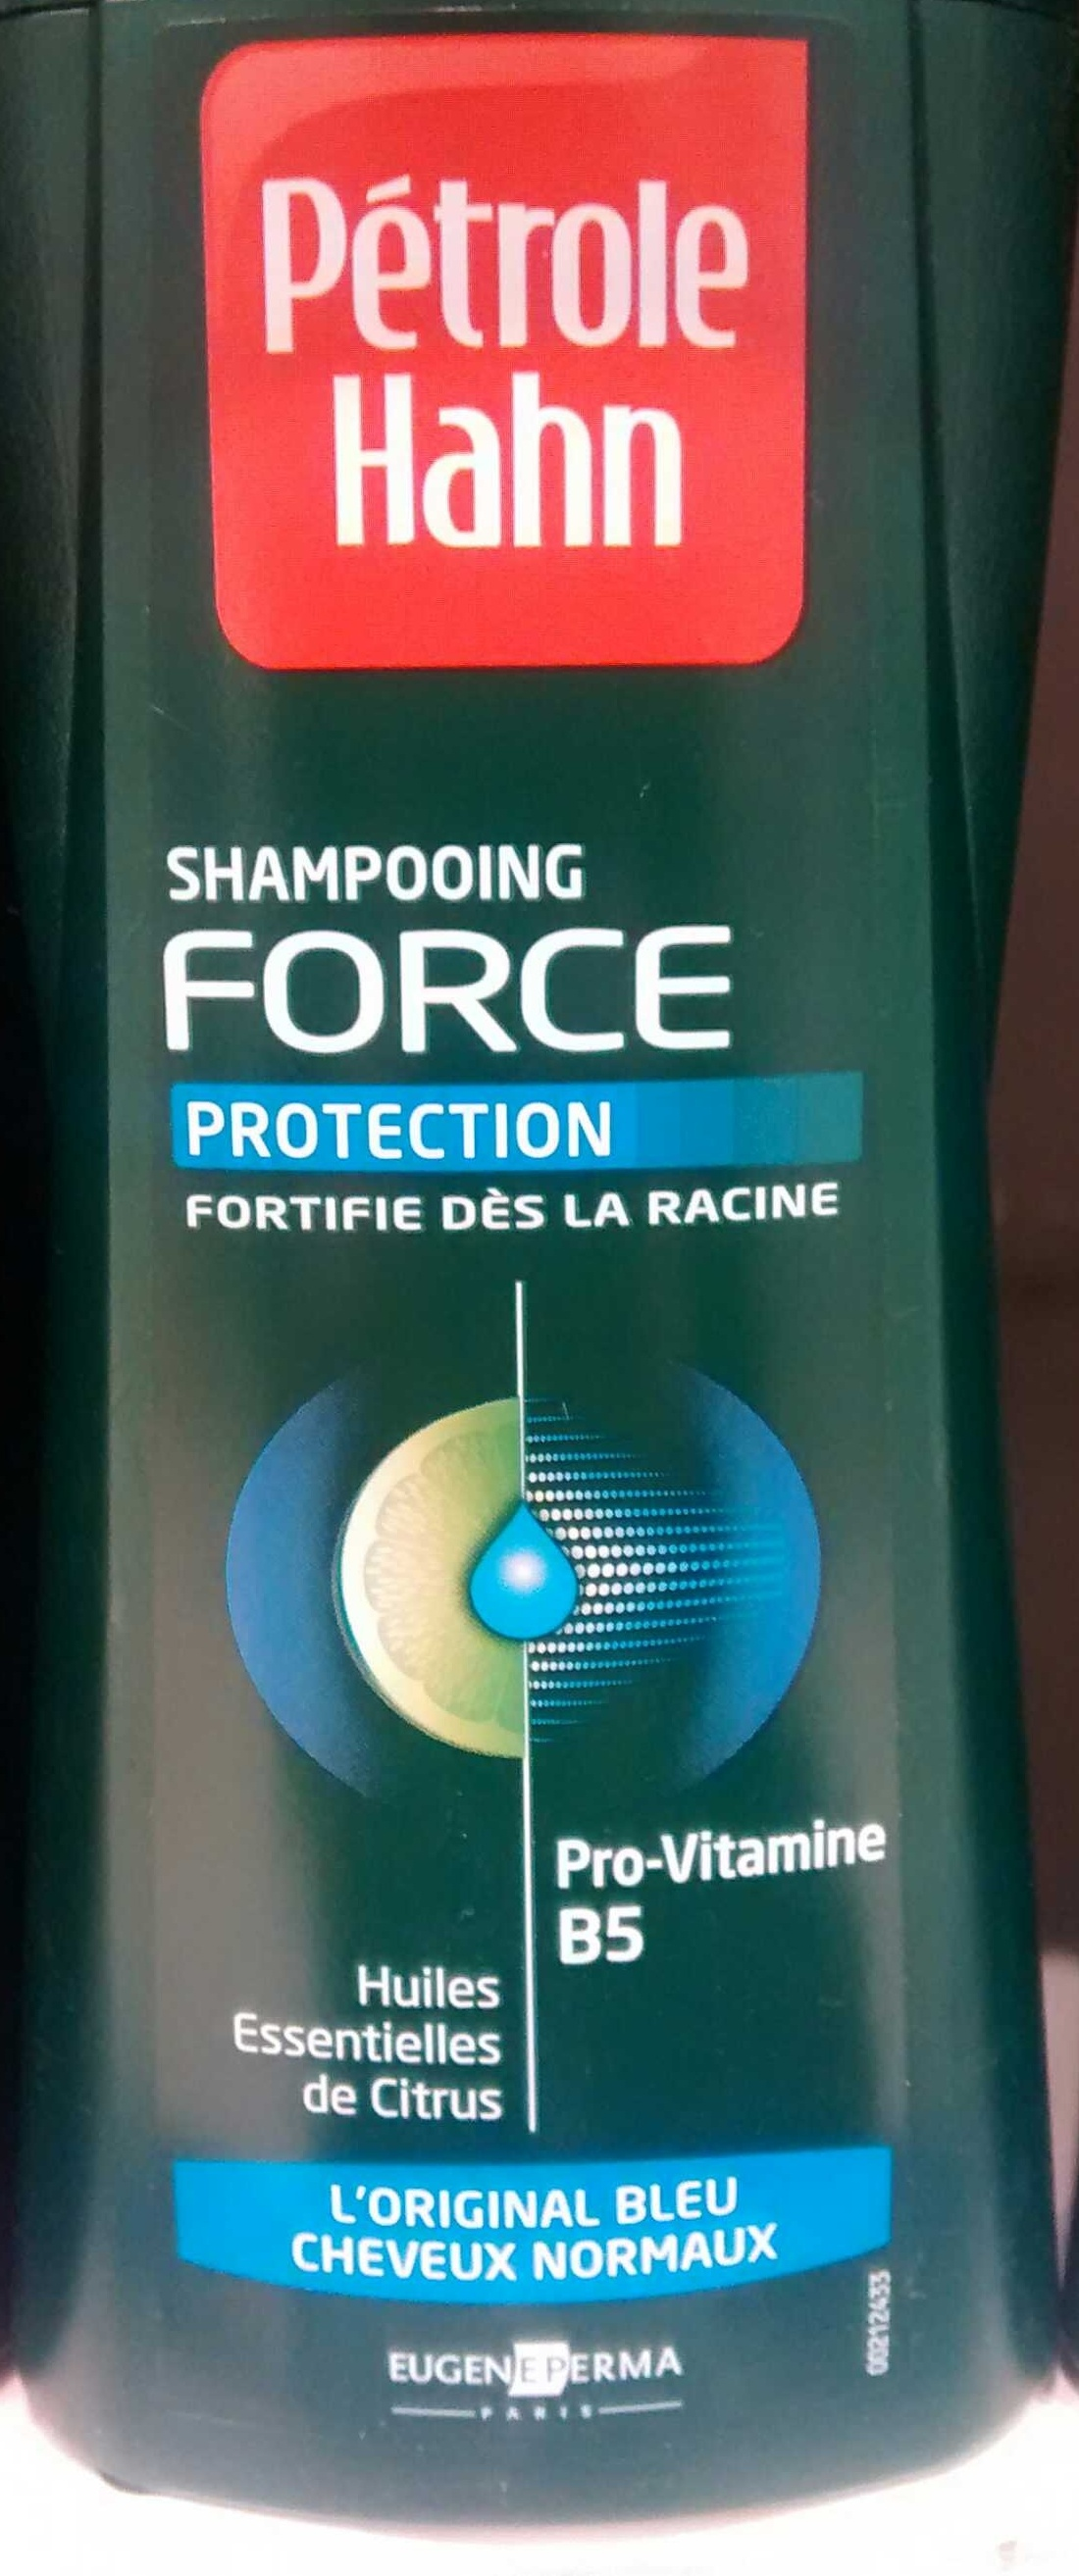 Shampooing force protection, l'original bleu - Product